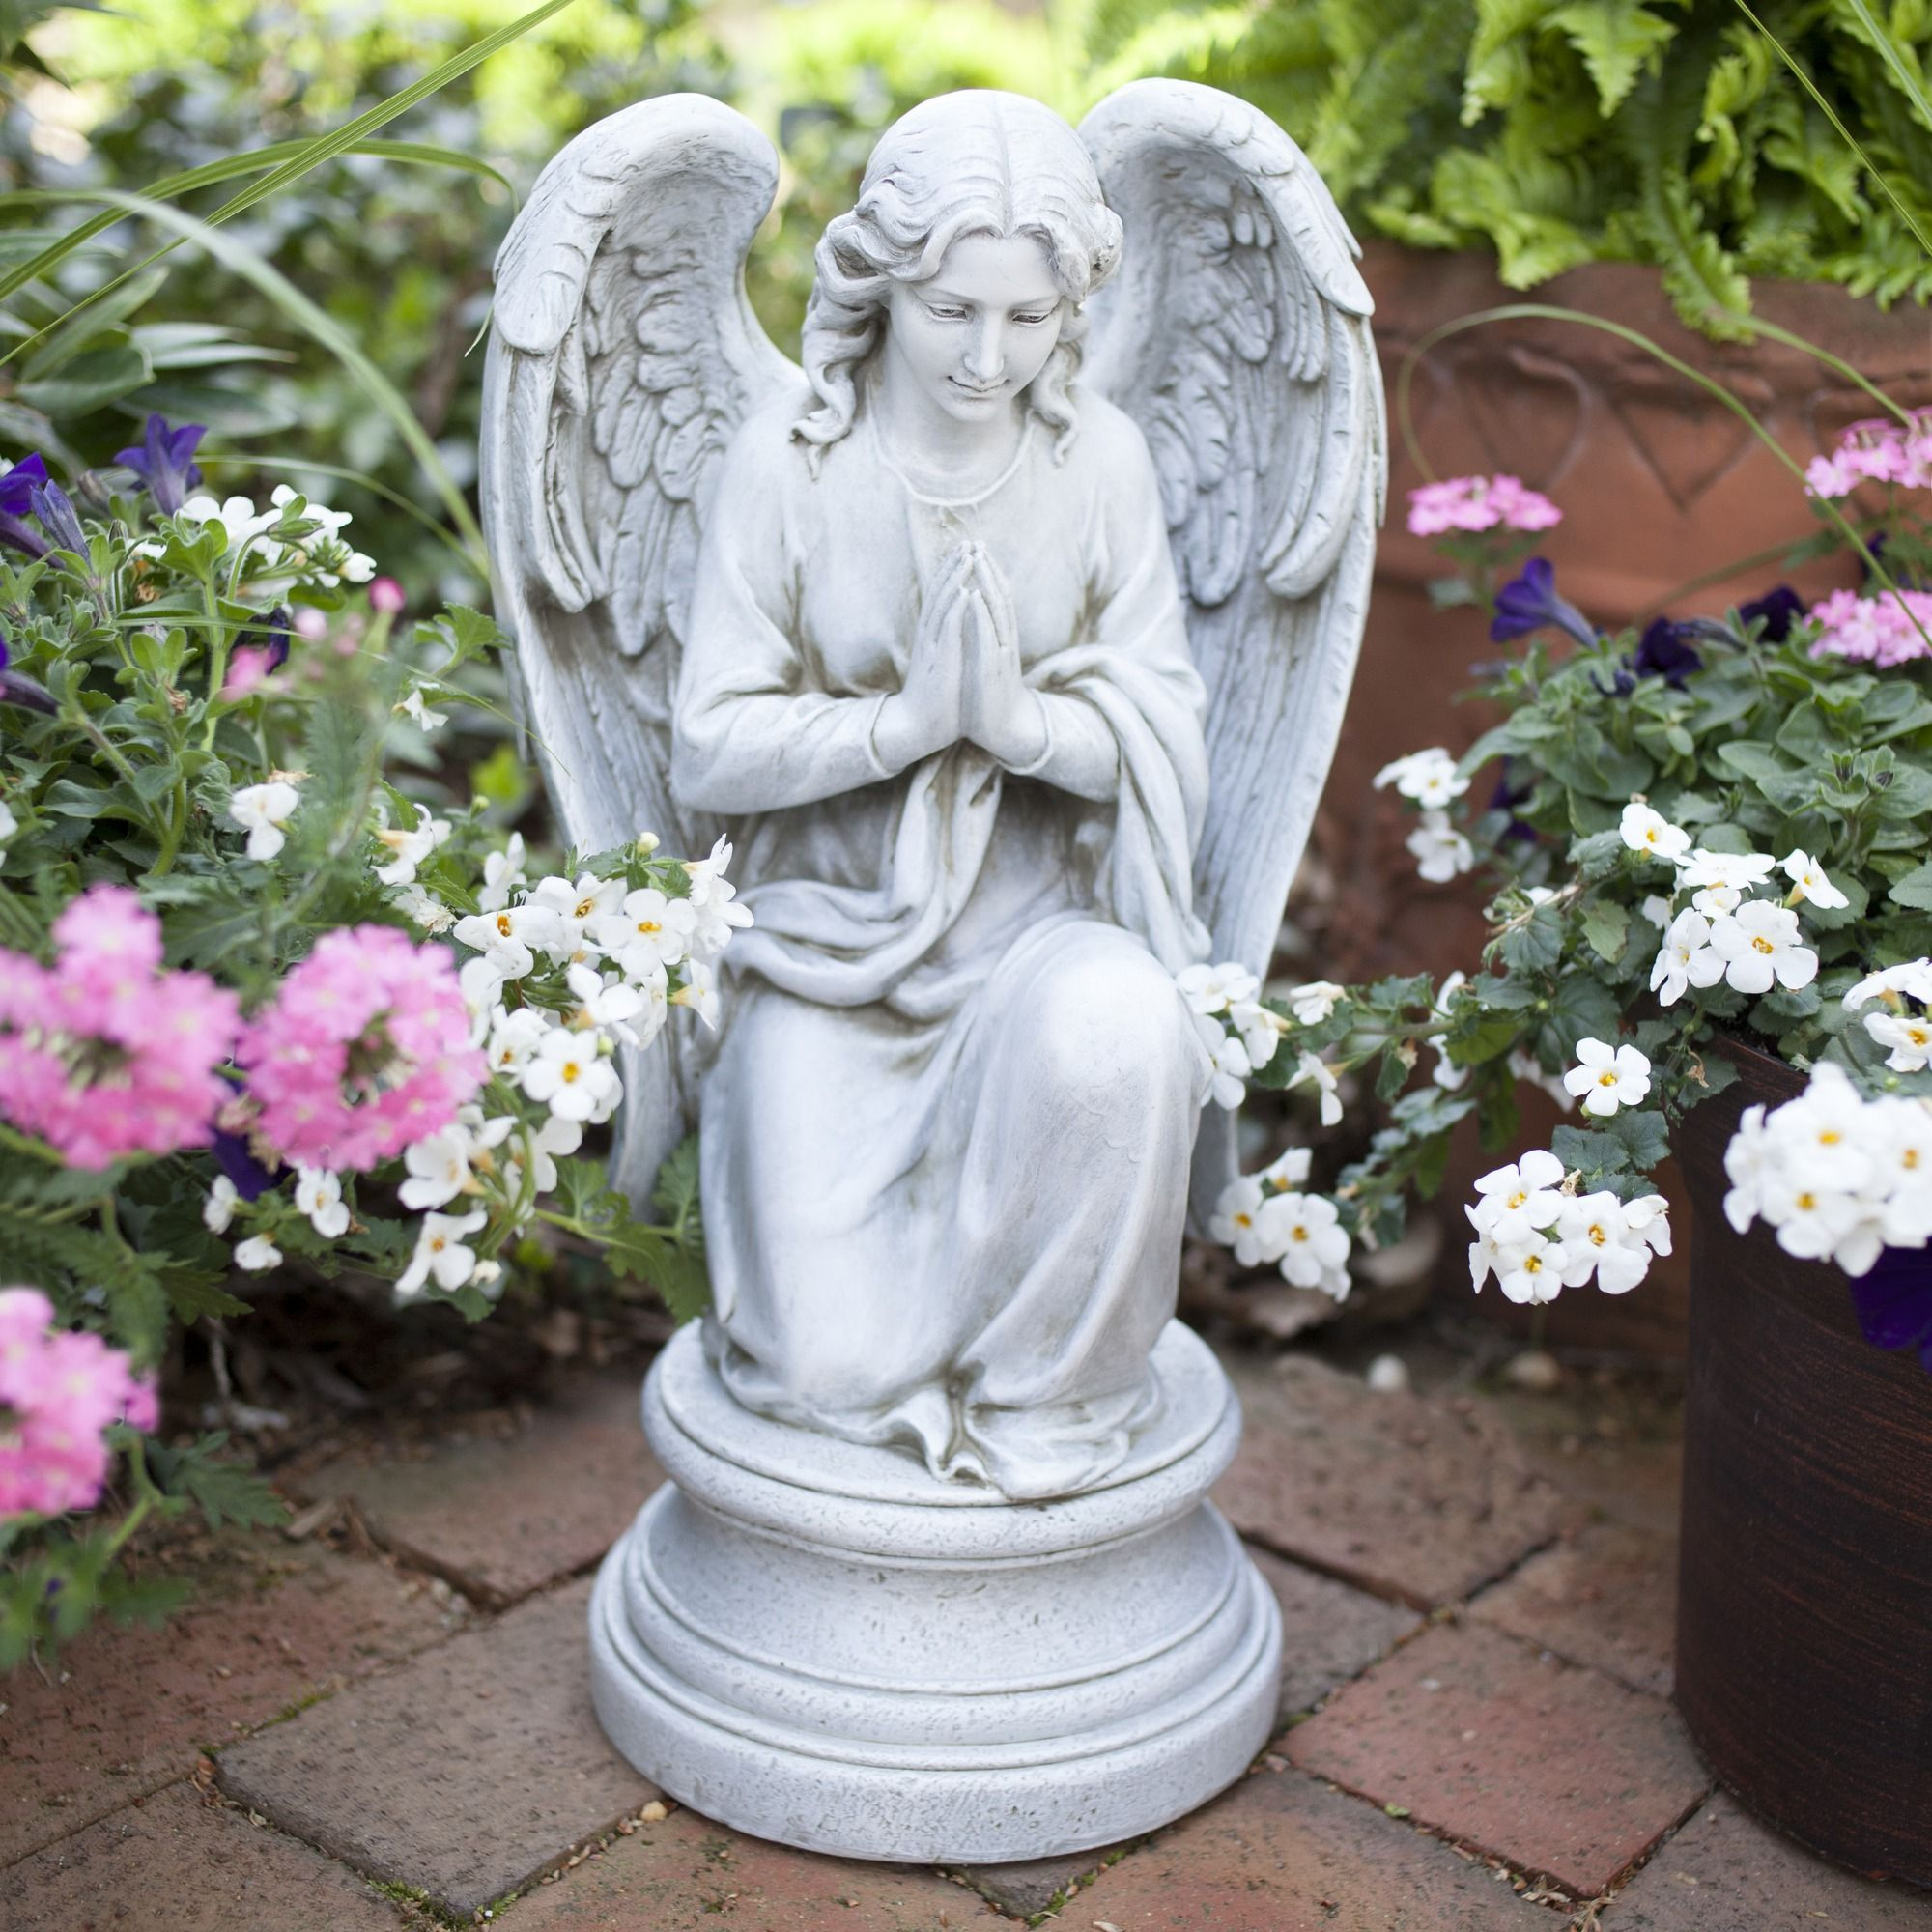 box rmn hands chapel with angel l cross loretto default glass blue garden praying etched angels memorial